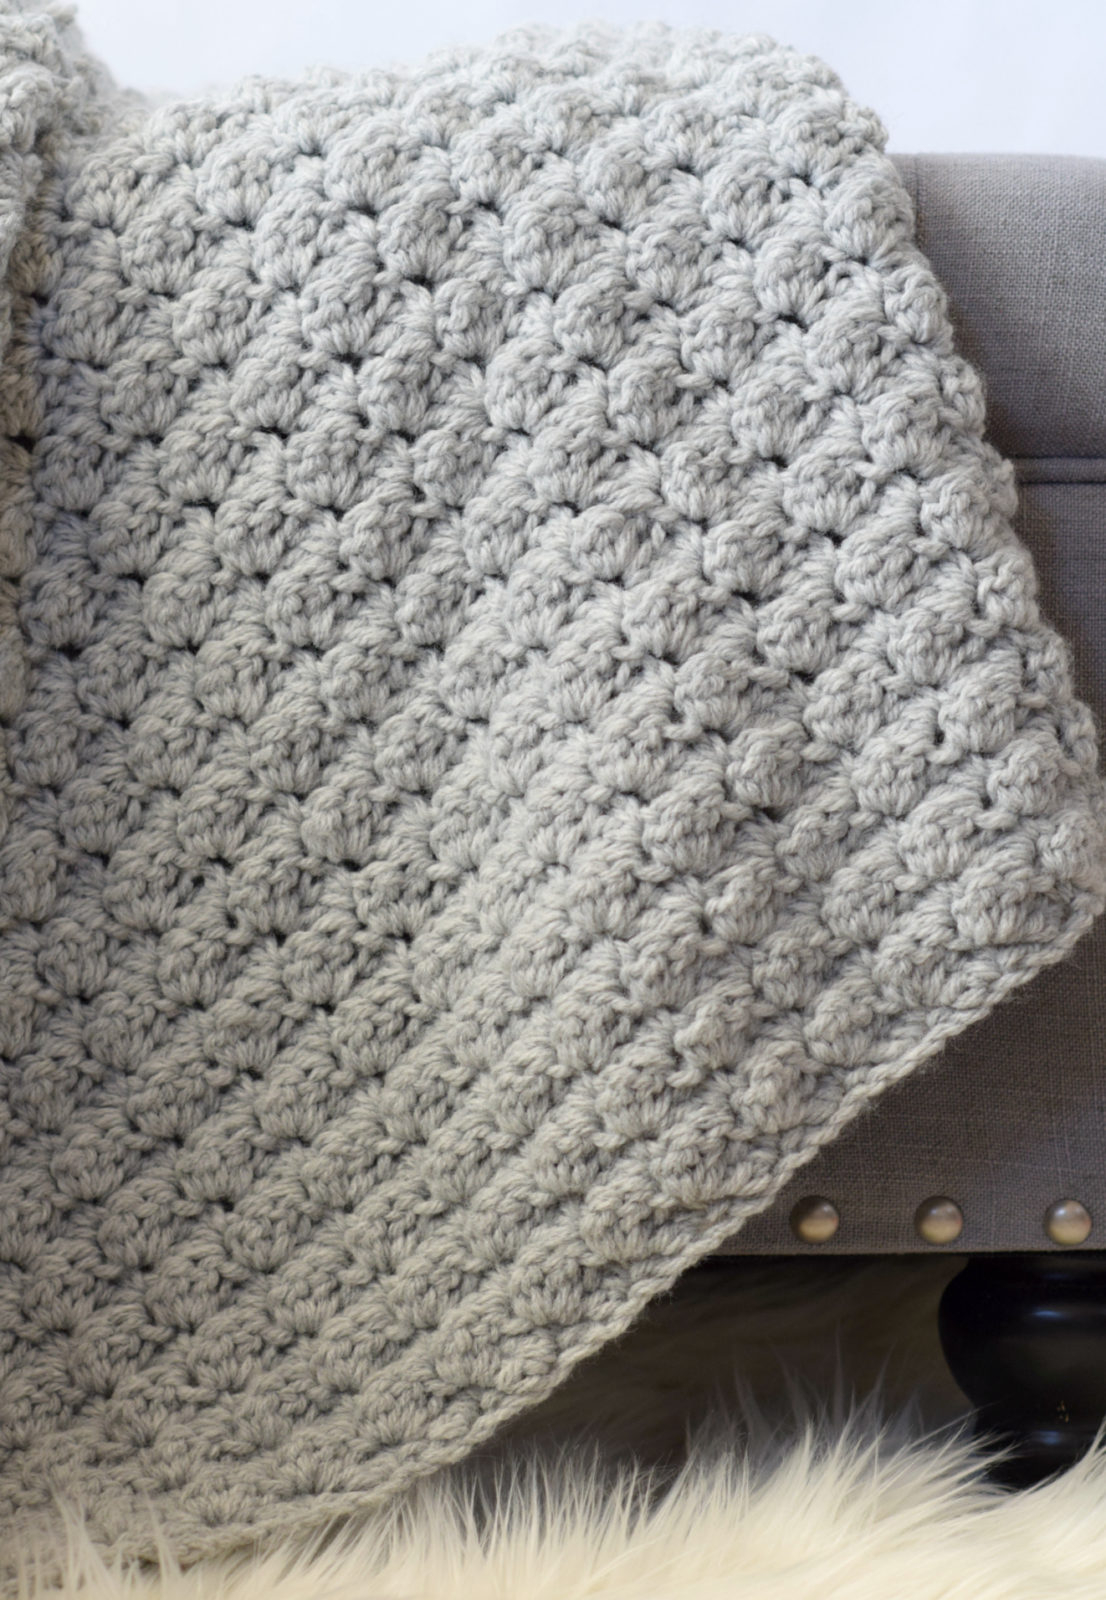 Super Easy Knit Baby Blanket Pattern Simple Crocheted Blanket Go To Pattern Mama In A Stitch